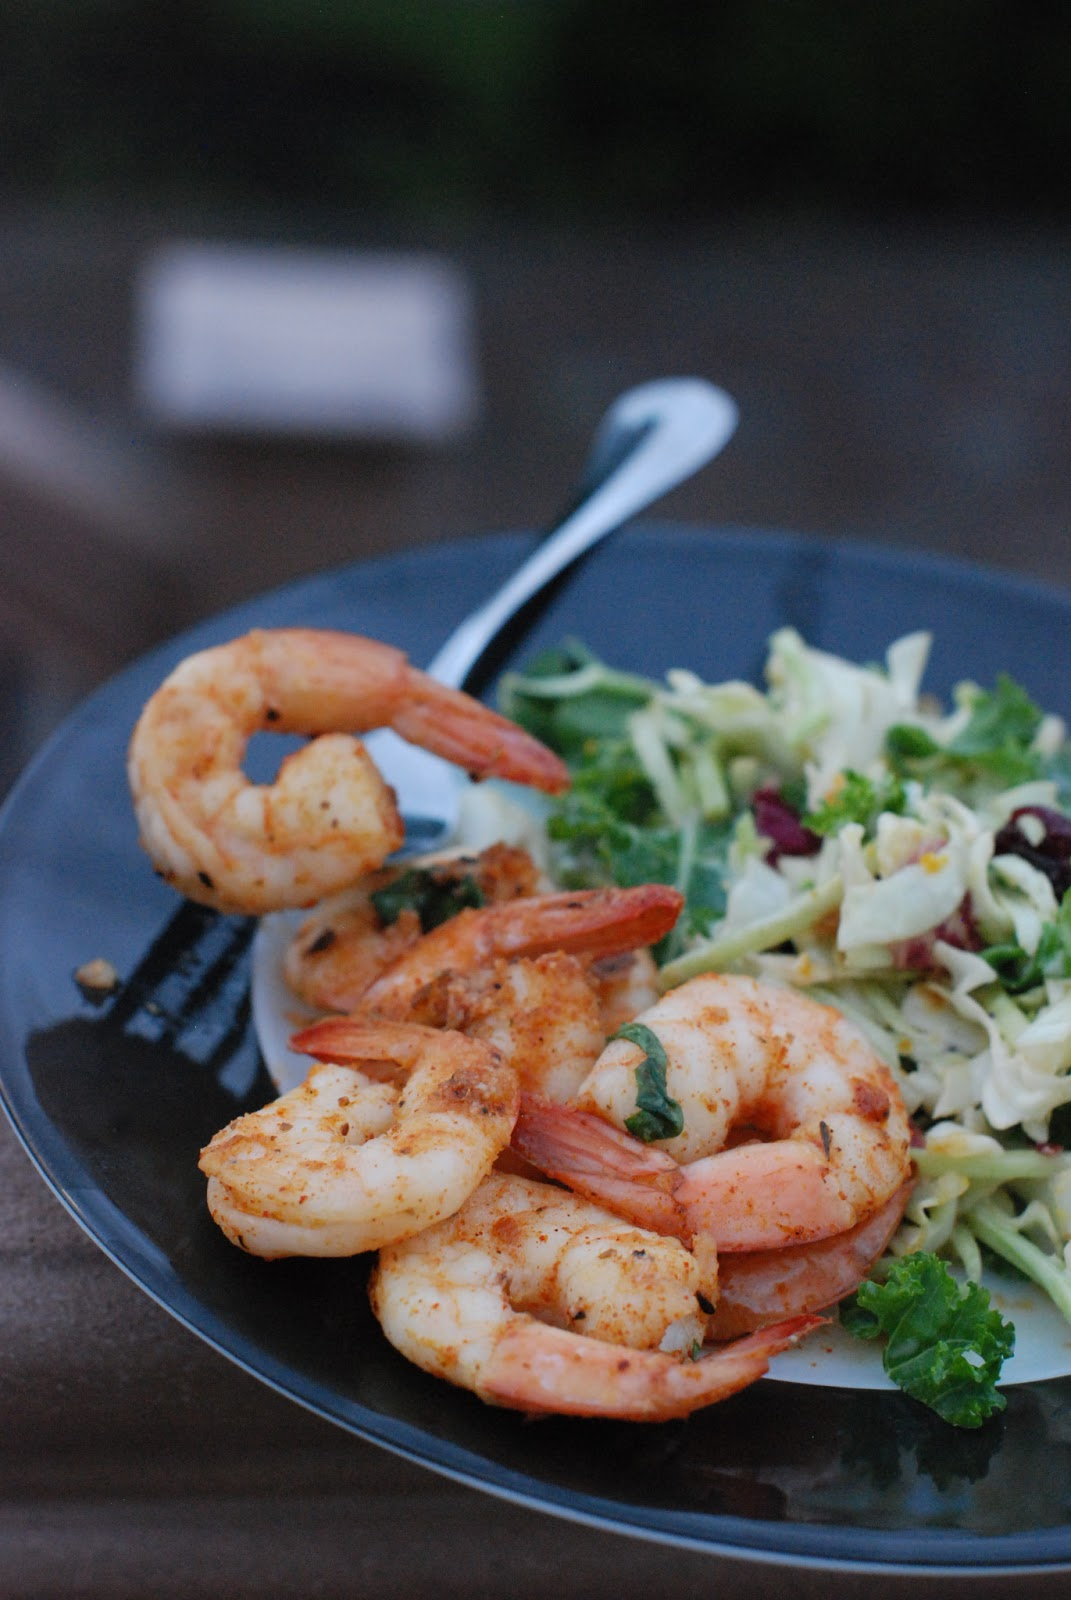 http://www.bongcookbook.com/2013/07/cajun-spiced-shrimp-very-forgiving.html